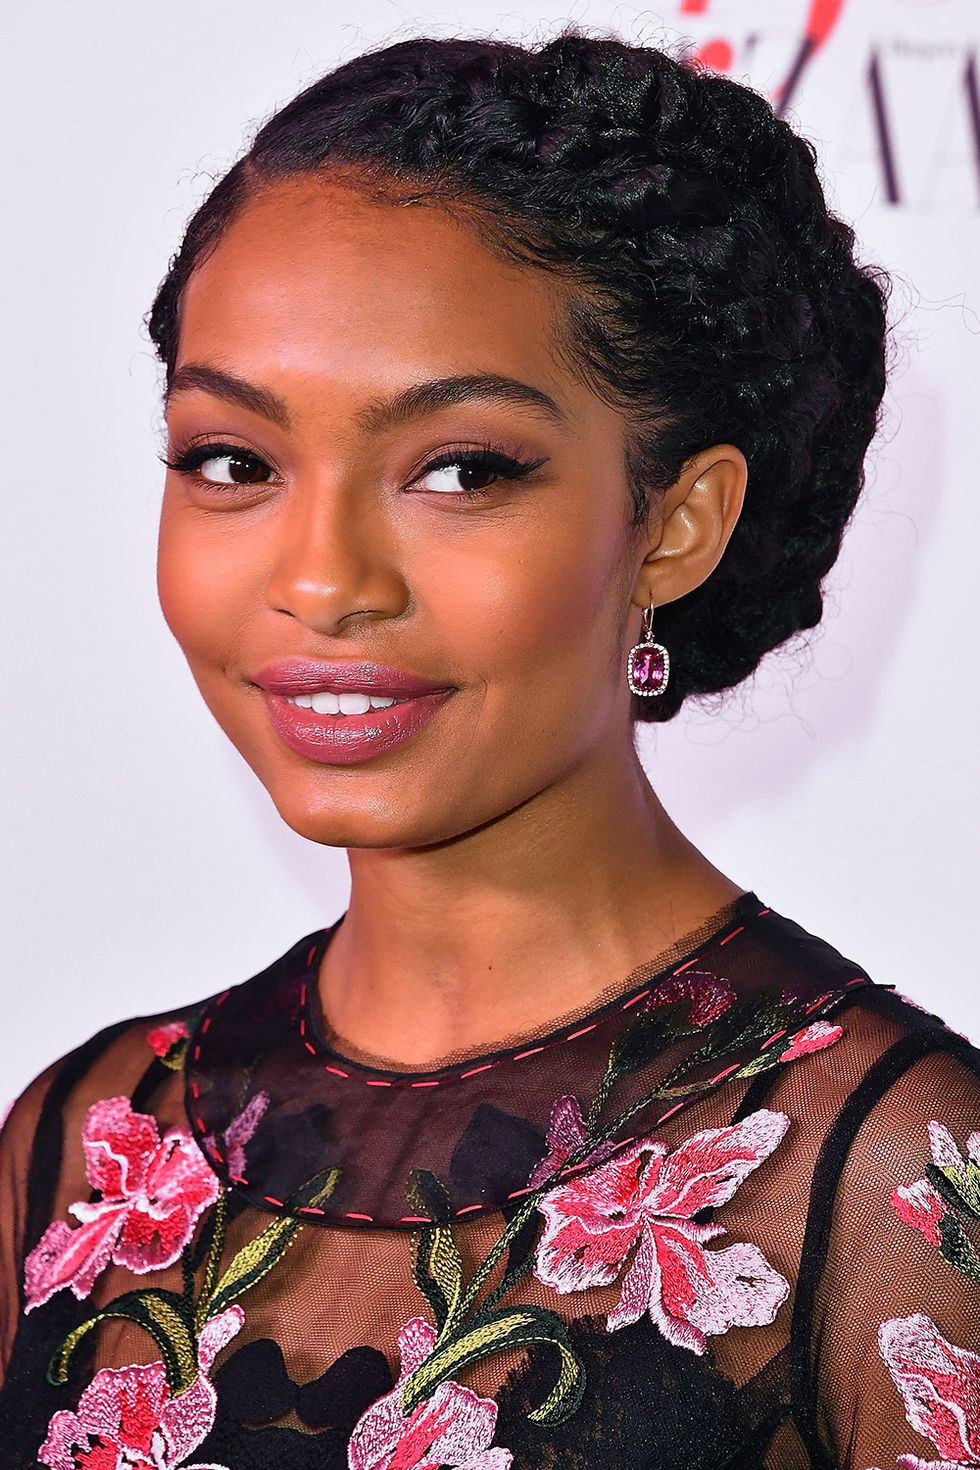 yara-shahidi-is-the-new-face-of-bobbi-brown-cosmetics